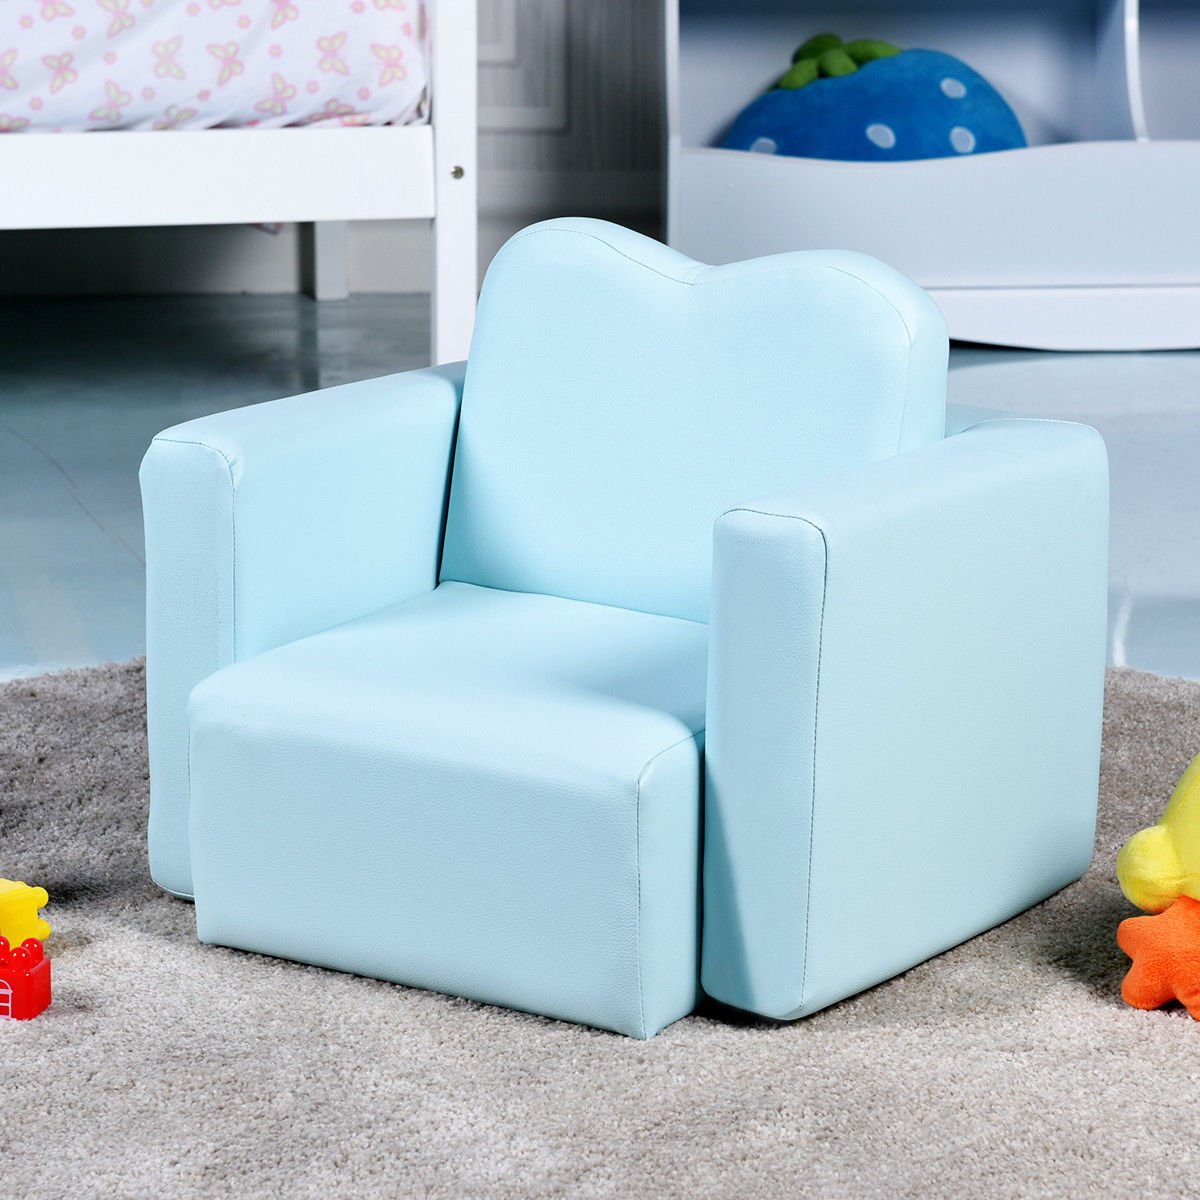 Costzon Kids Sofa, 2-in-1 Multi-Functional Kids Table & Chair Set, Sturdy Wood Construction, Armrest Chair for Boys & Girls (Blue) by Costzon (Image #5)